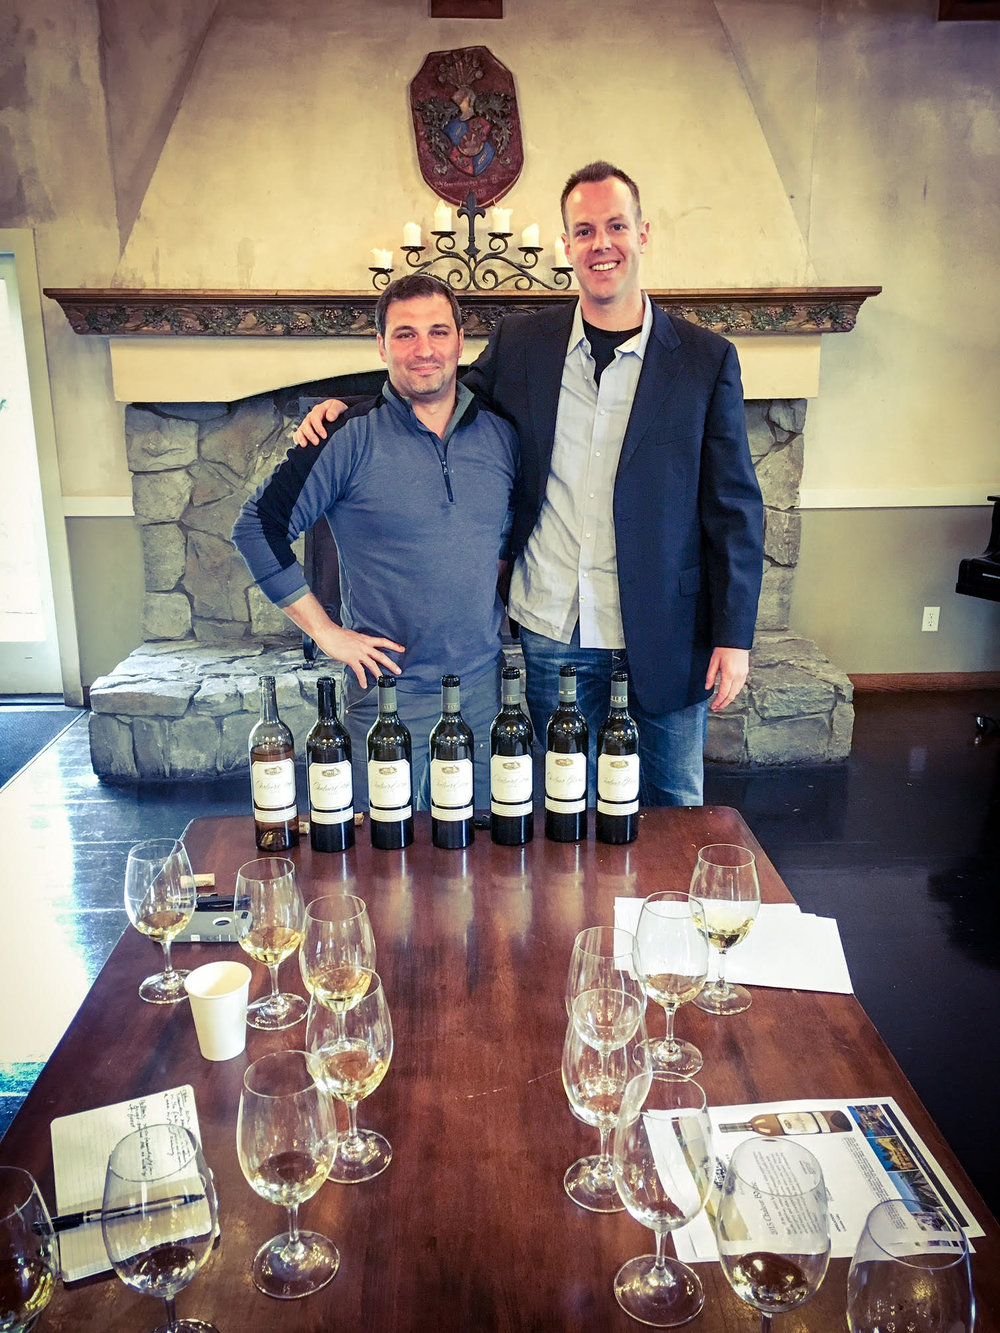 I had a marvelous tasting of DeLille 'Chaleur Estate Blanc' with superstar winemaker, Jason Gorski